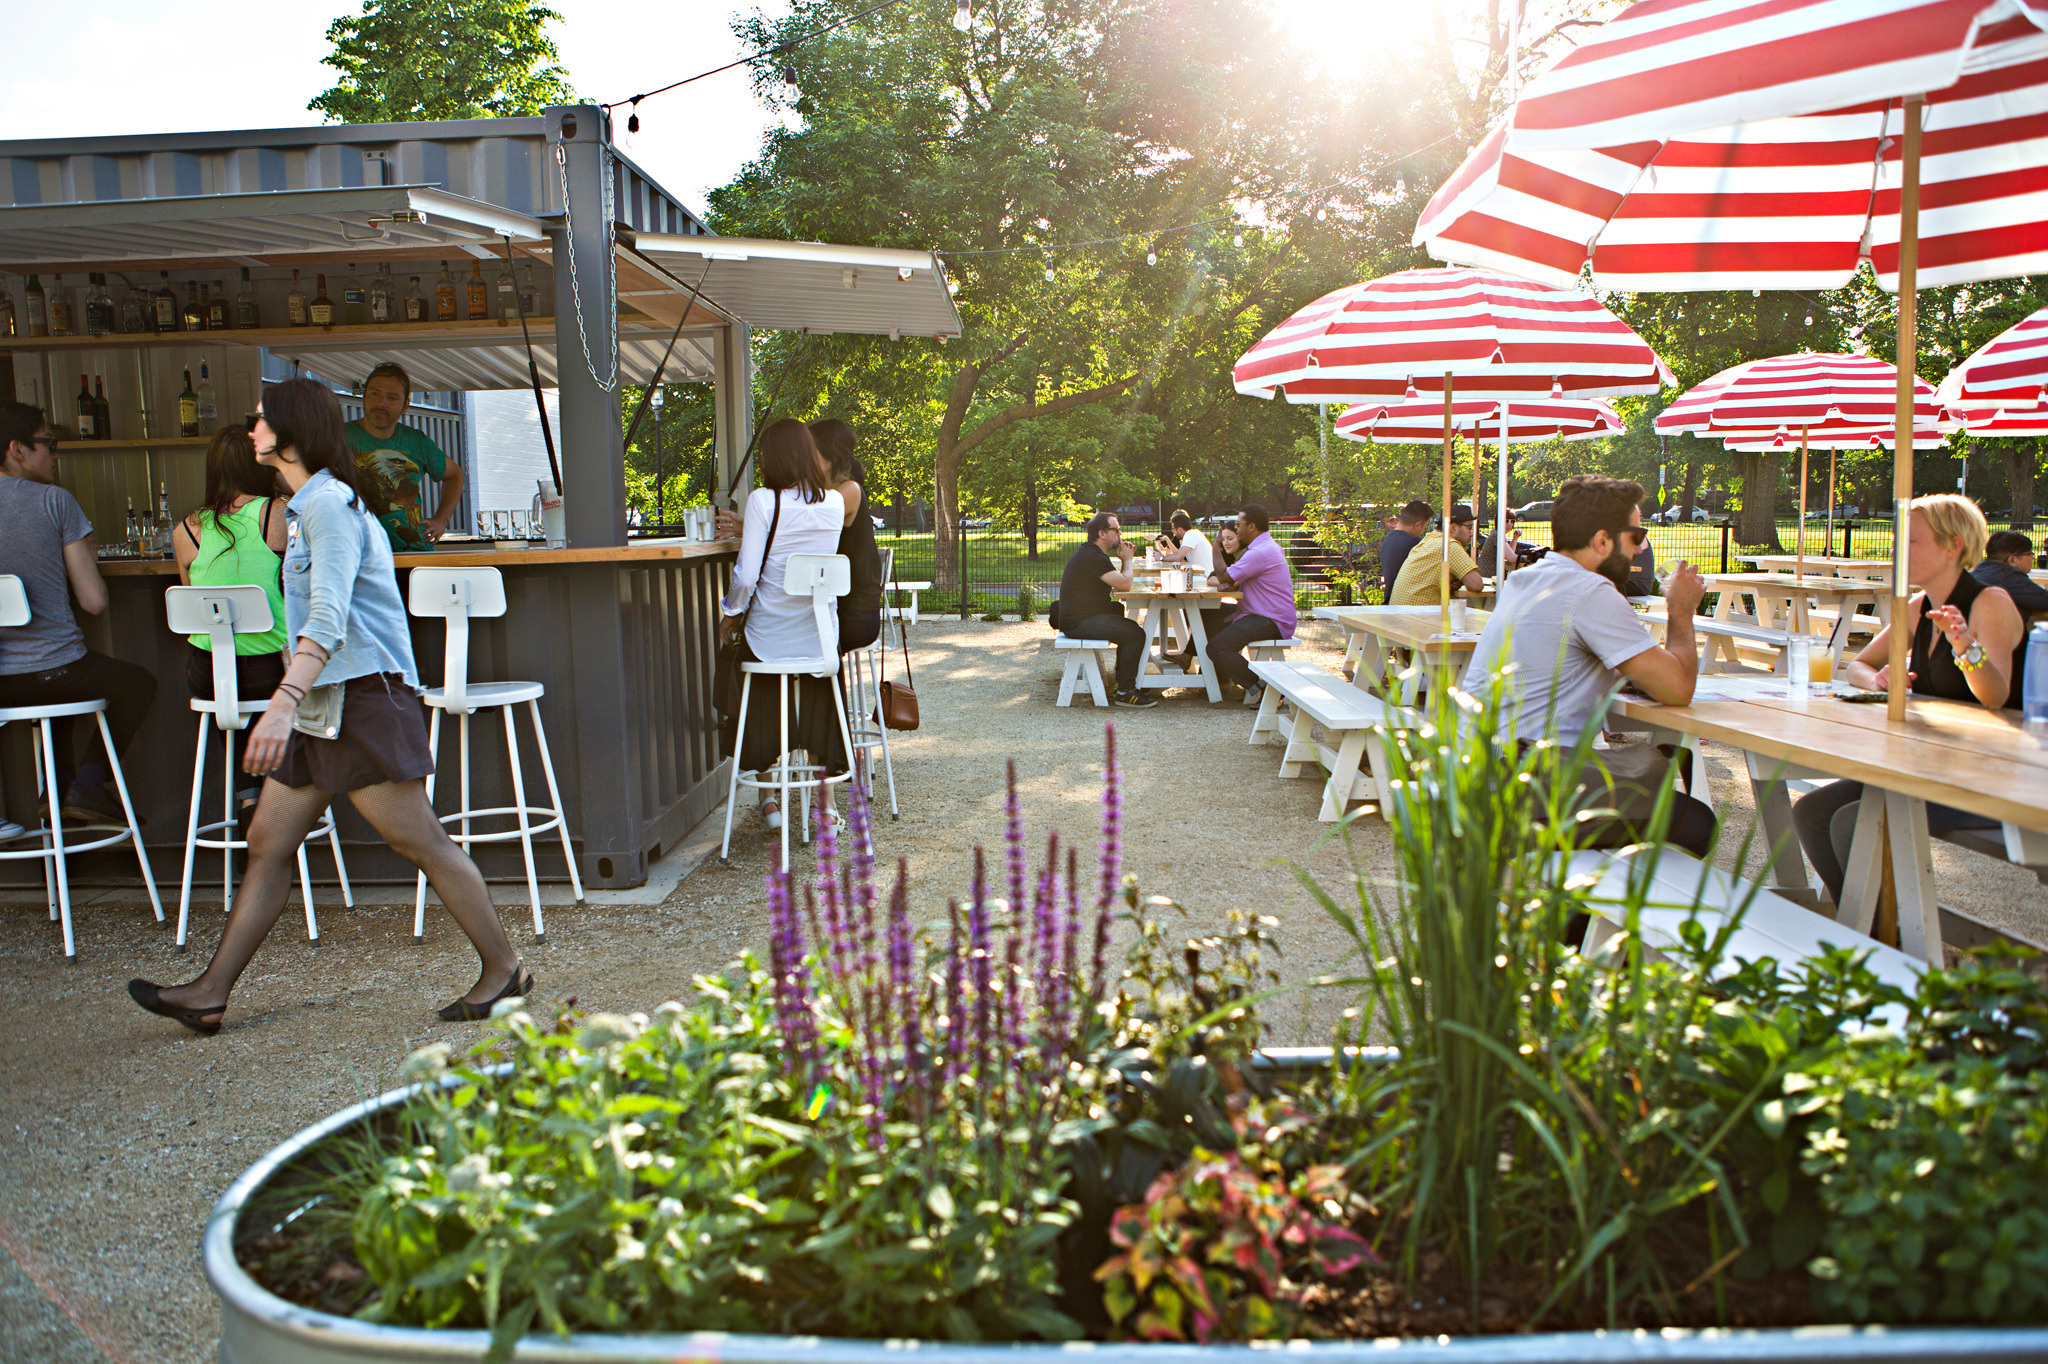 20 Best Outdoor Restaurants, Patios and Cafes in Chicago